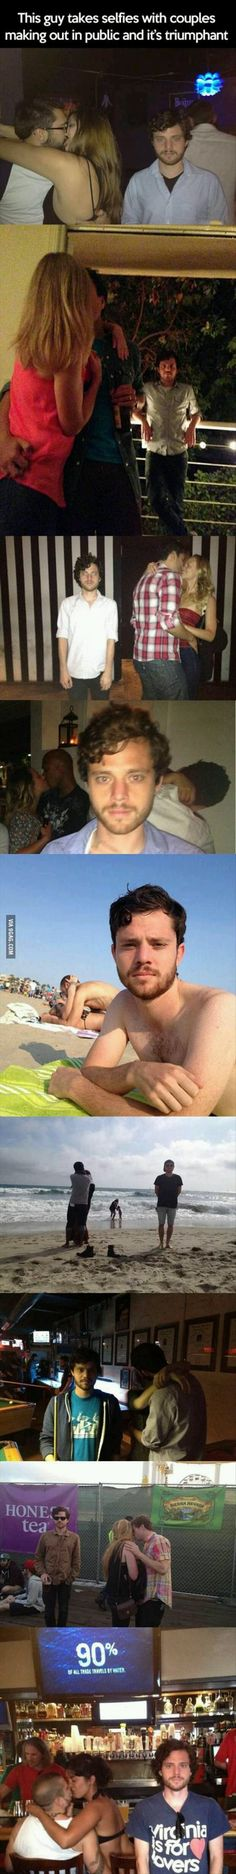 This guy takes pictures of himself next to couples making out in public